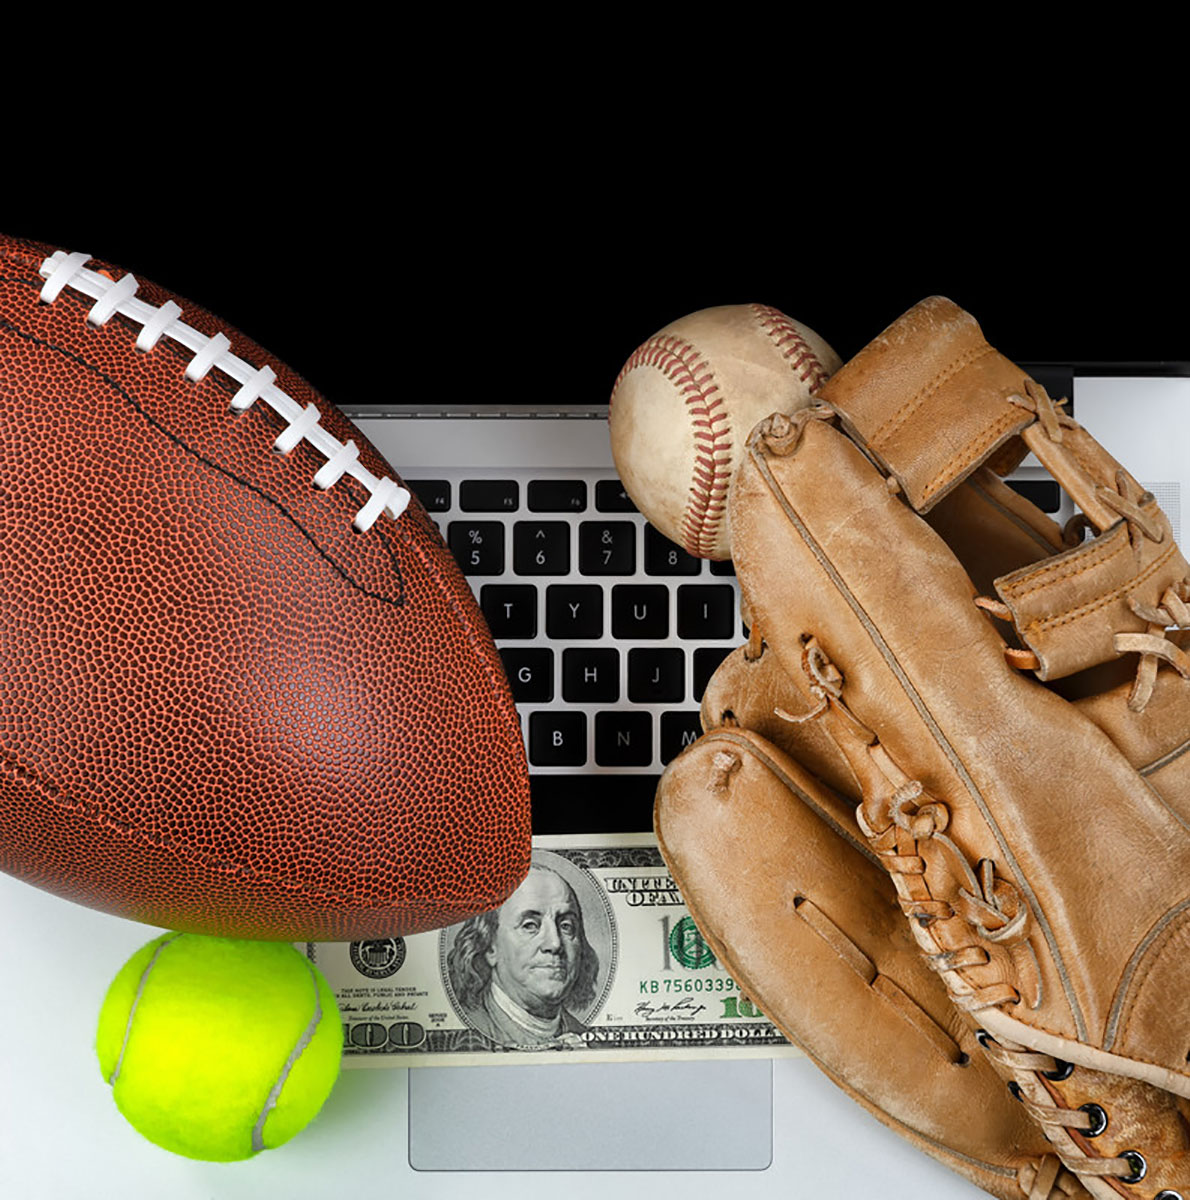 Bets are often made on big sporting events such as the Super Bowl which was held Saturday.